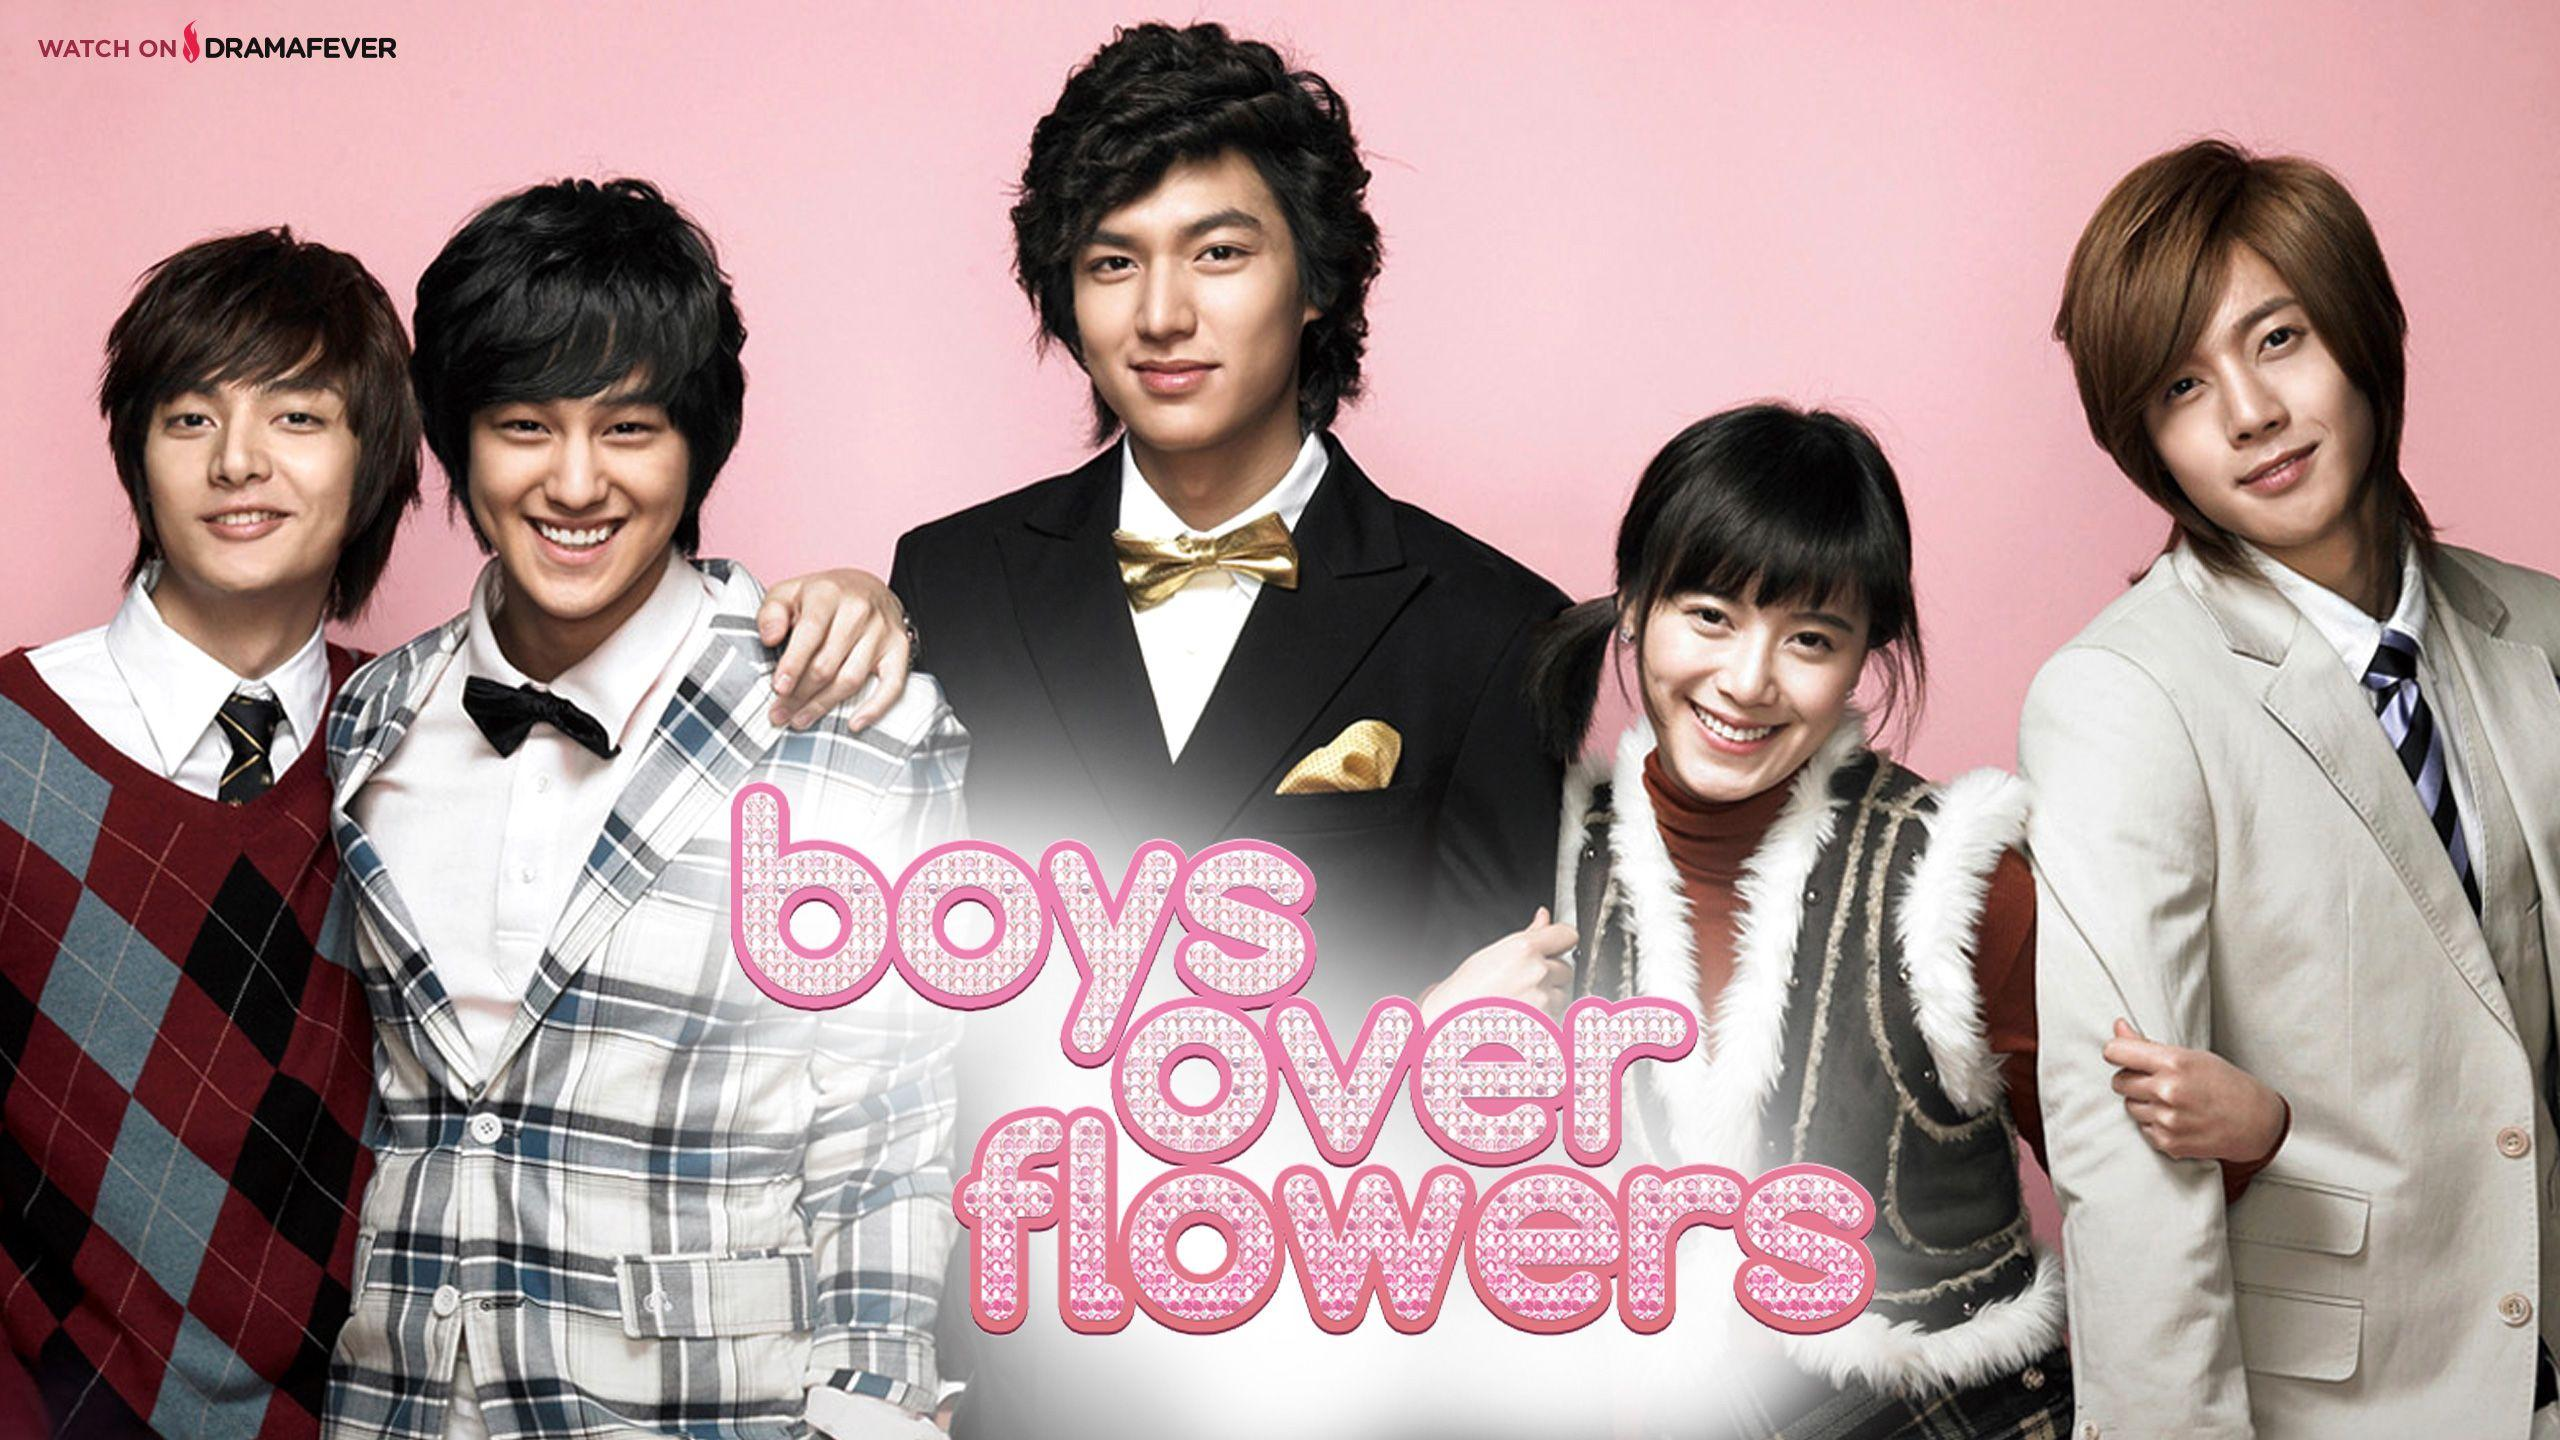 Boys over flowers wallpapers wallpaper cave - Flower boy wallpaper iphone x ...